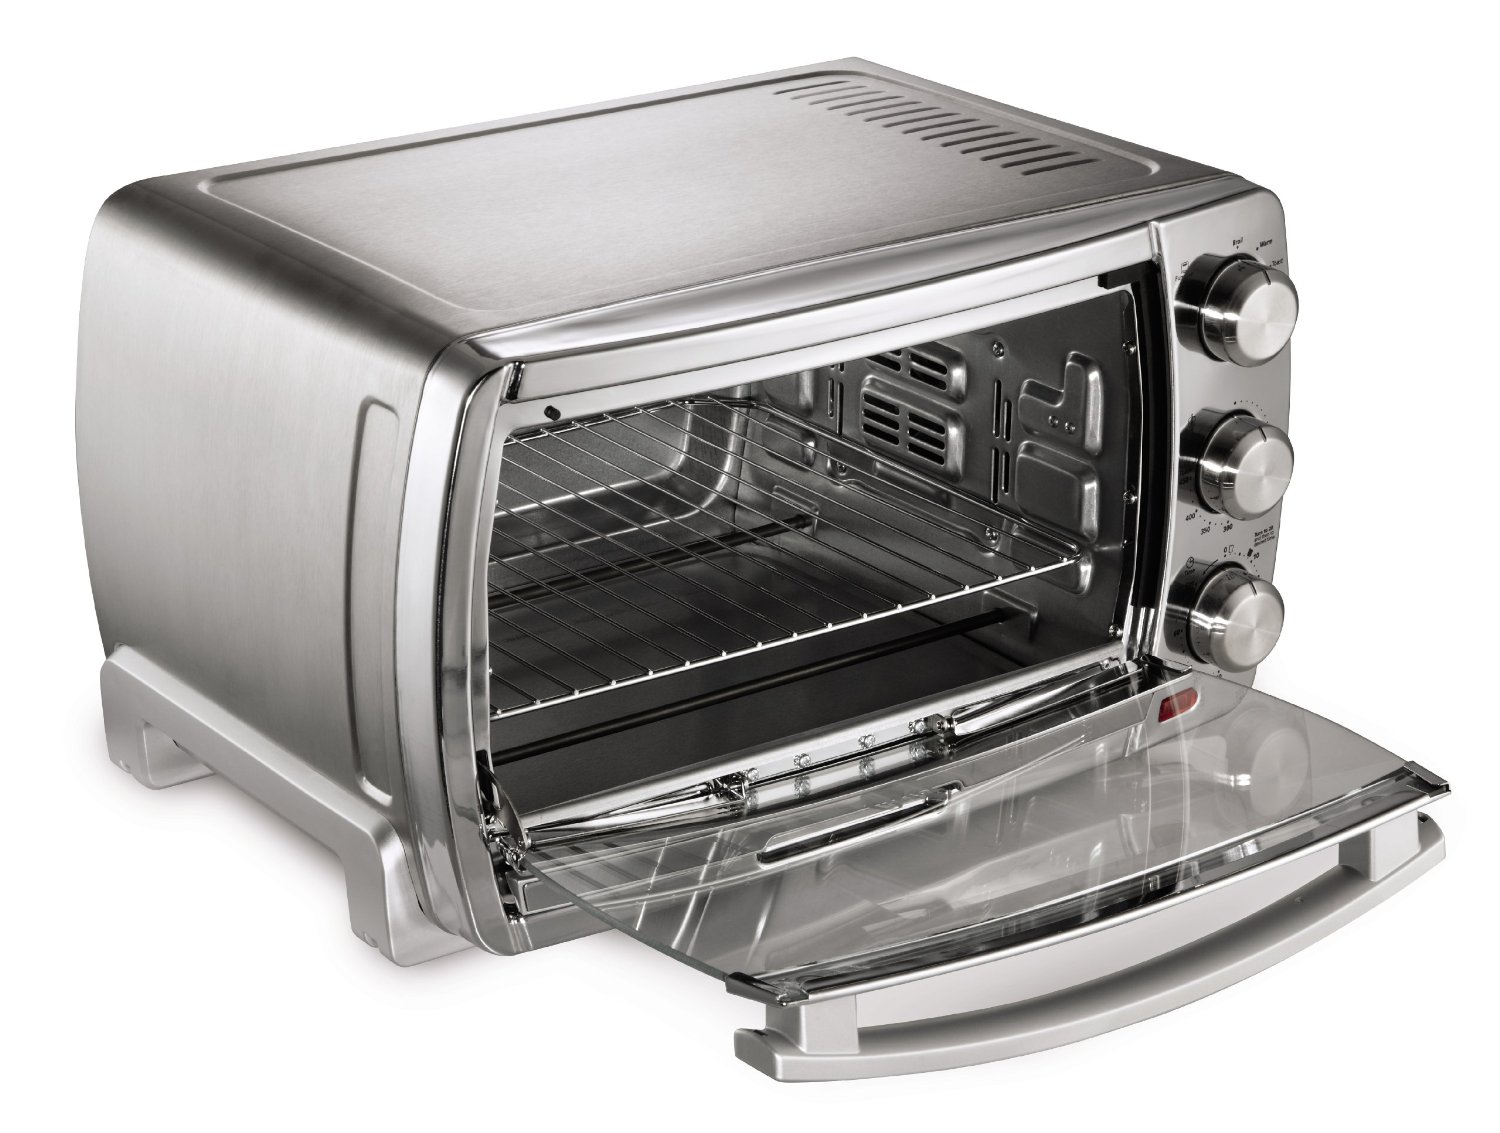 Oster Extra Countertop Convection Oven 18 8 x 22 1 2 x 14 1